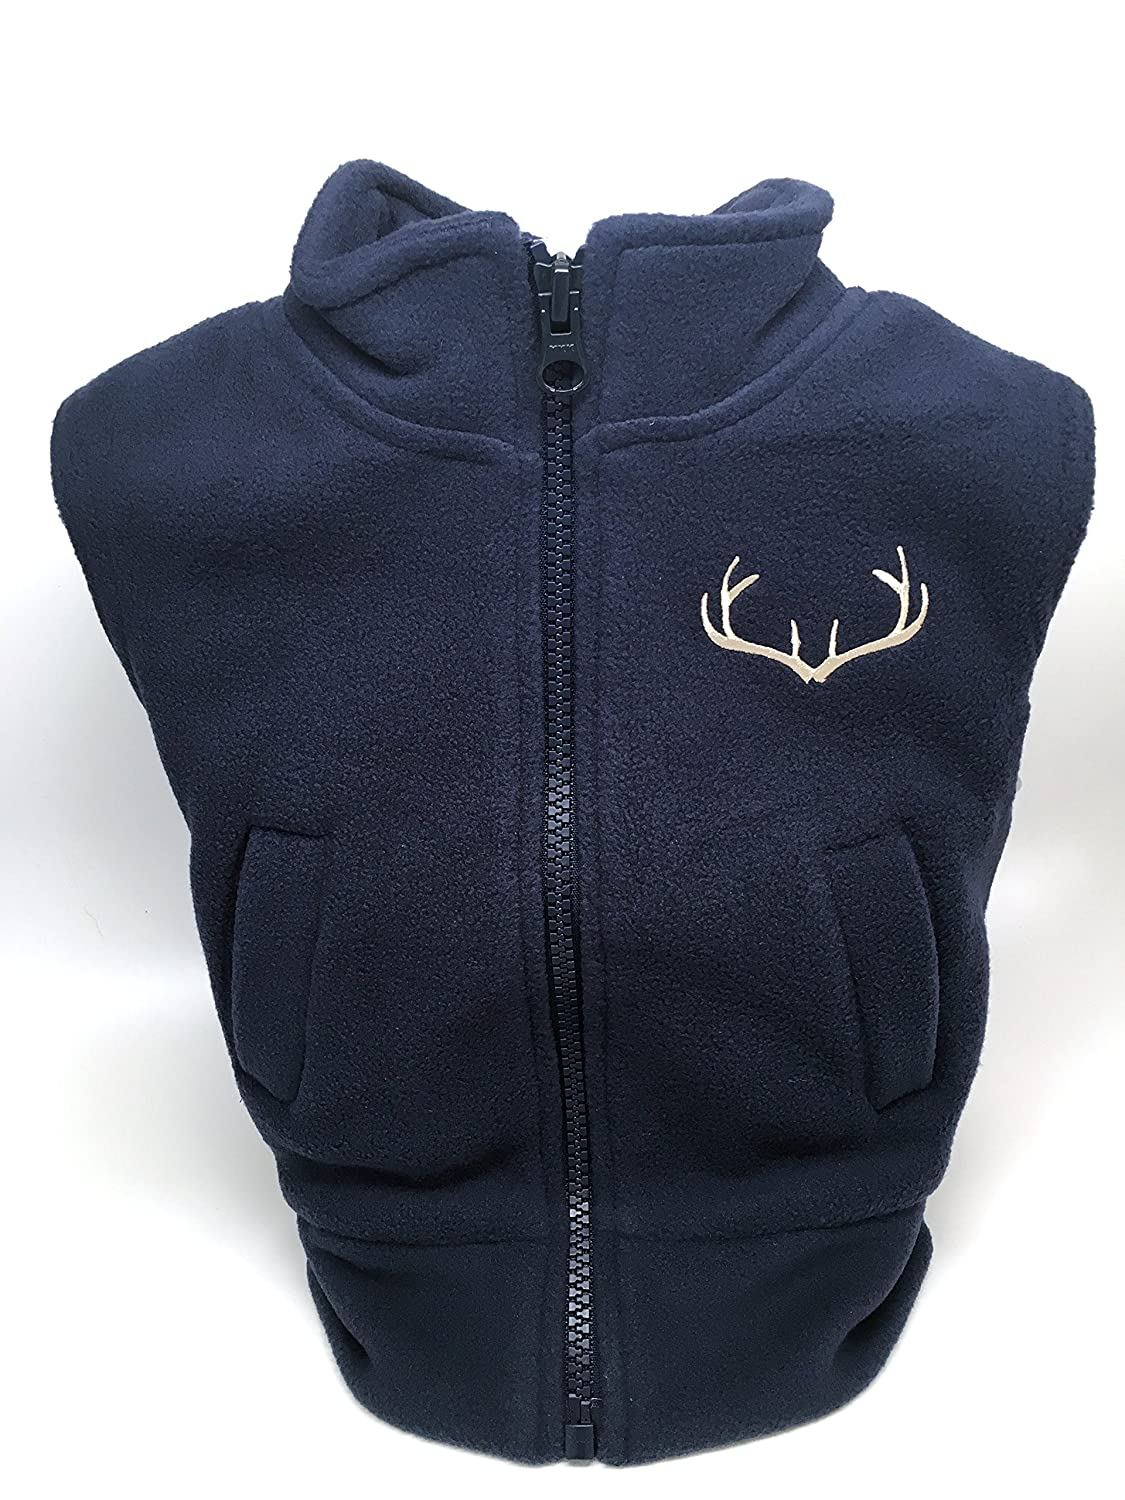 Navy Polar Fleece Zippered Vest Infant//Toddler with Embroidered Antlers